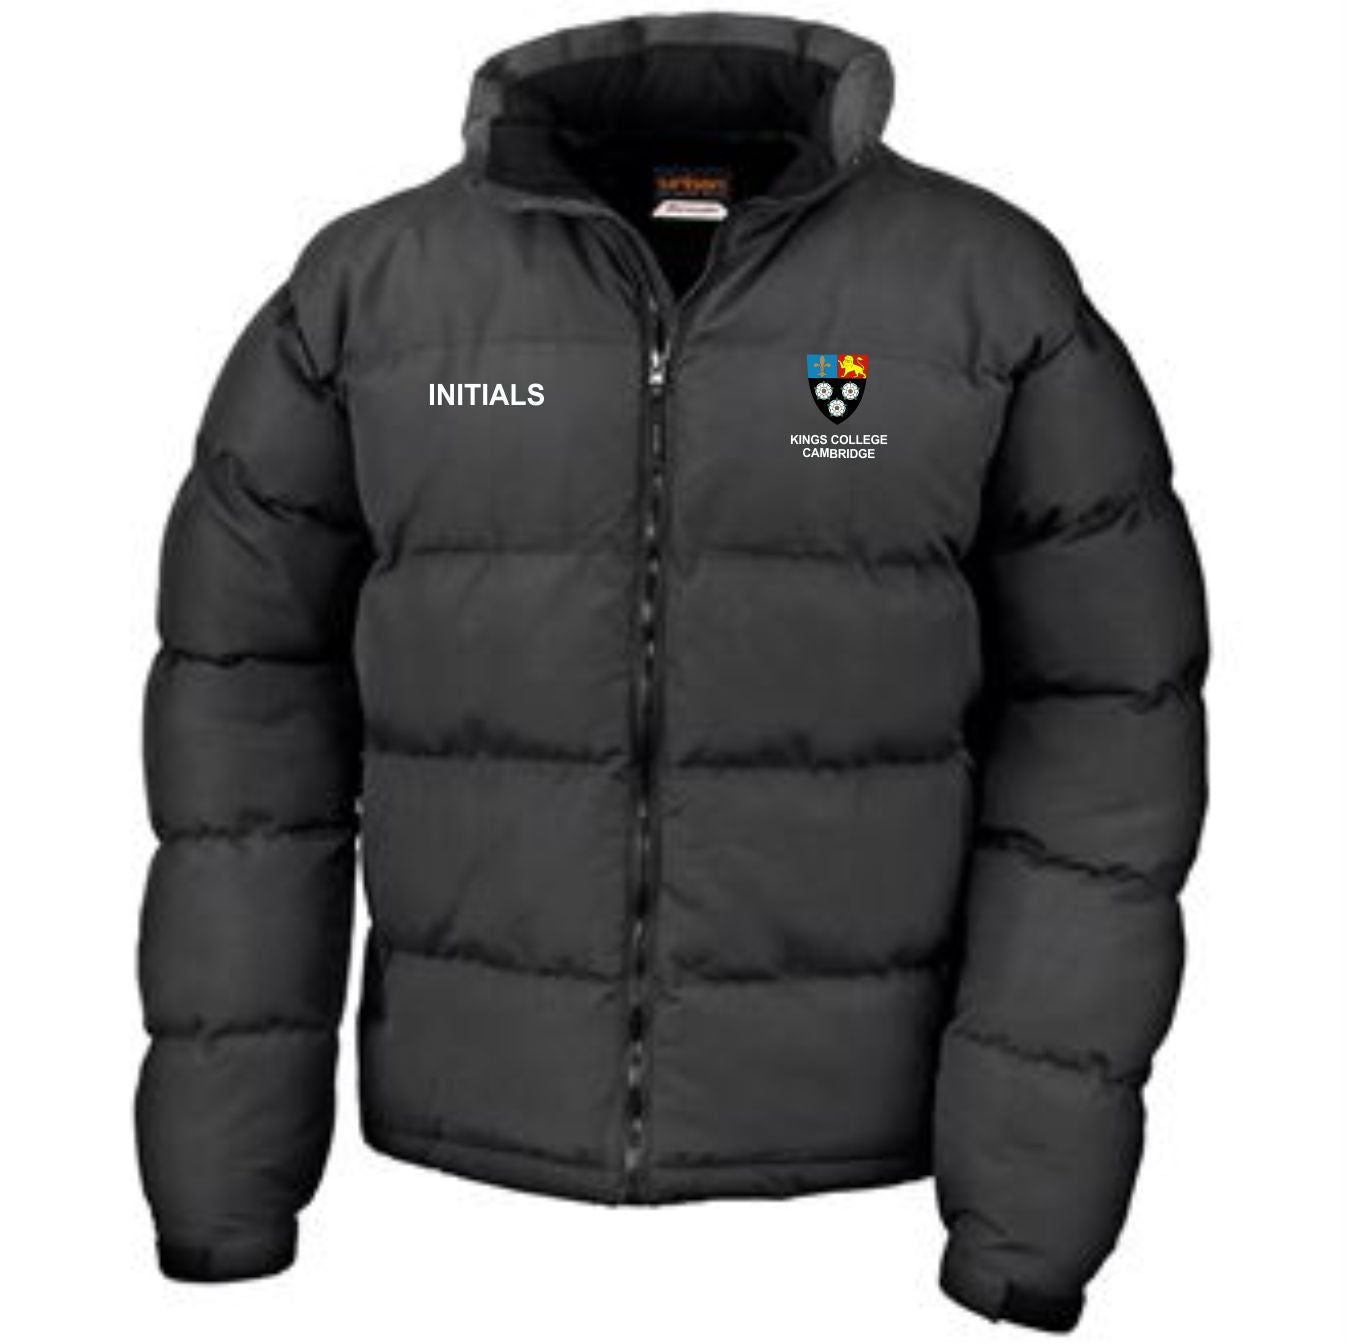 Kings College Cambridge Mens Puffa jacket